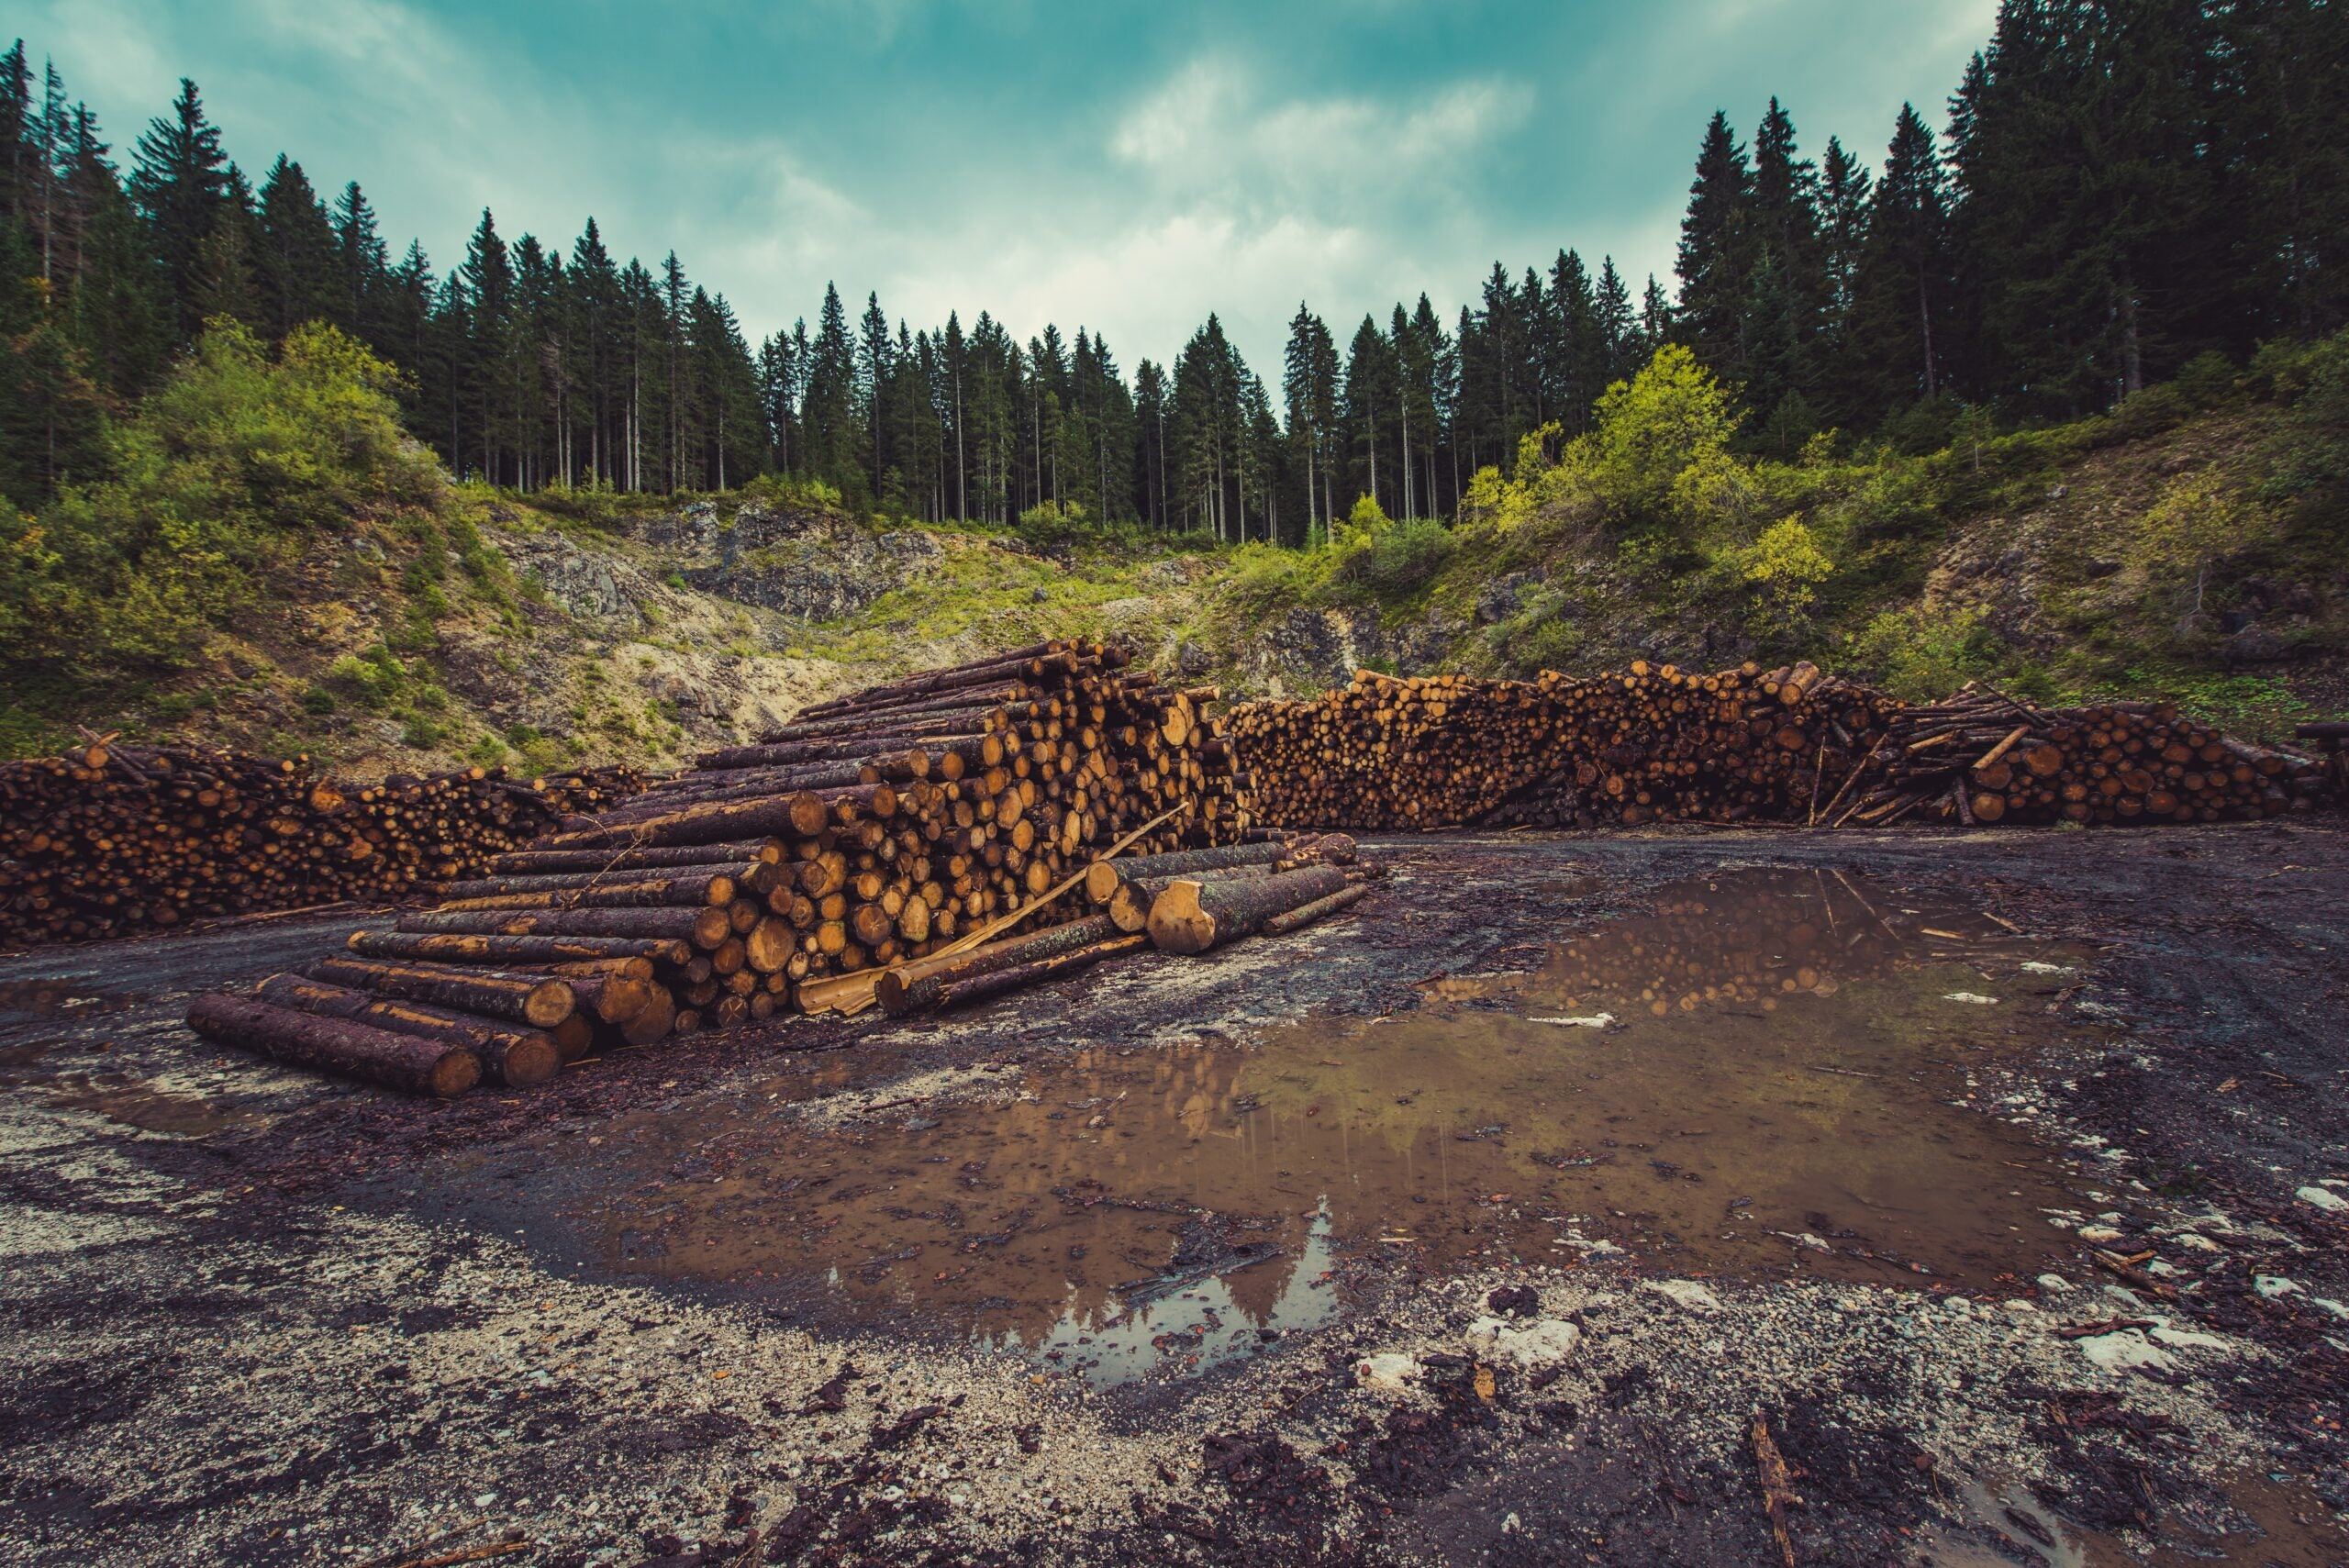 deforested area with cut logs